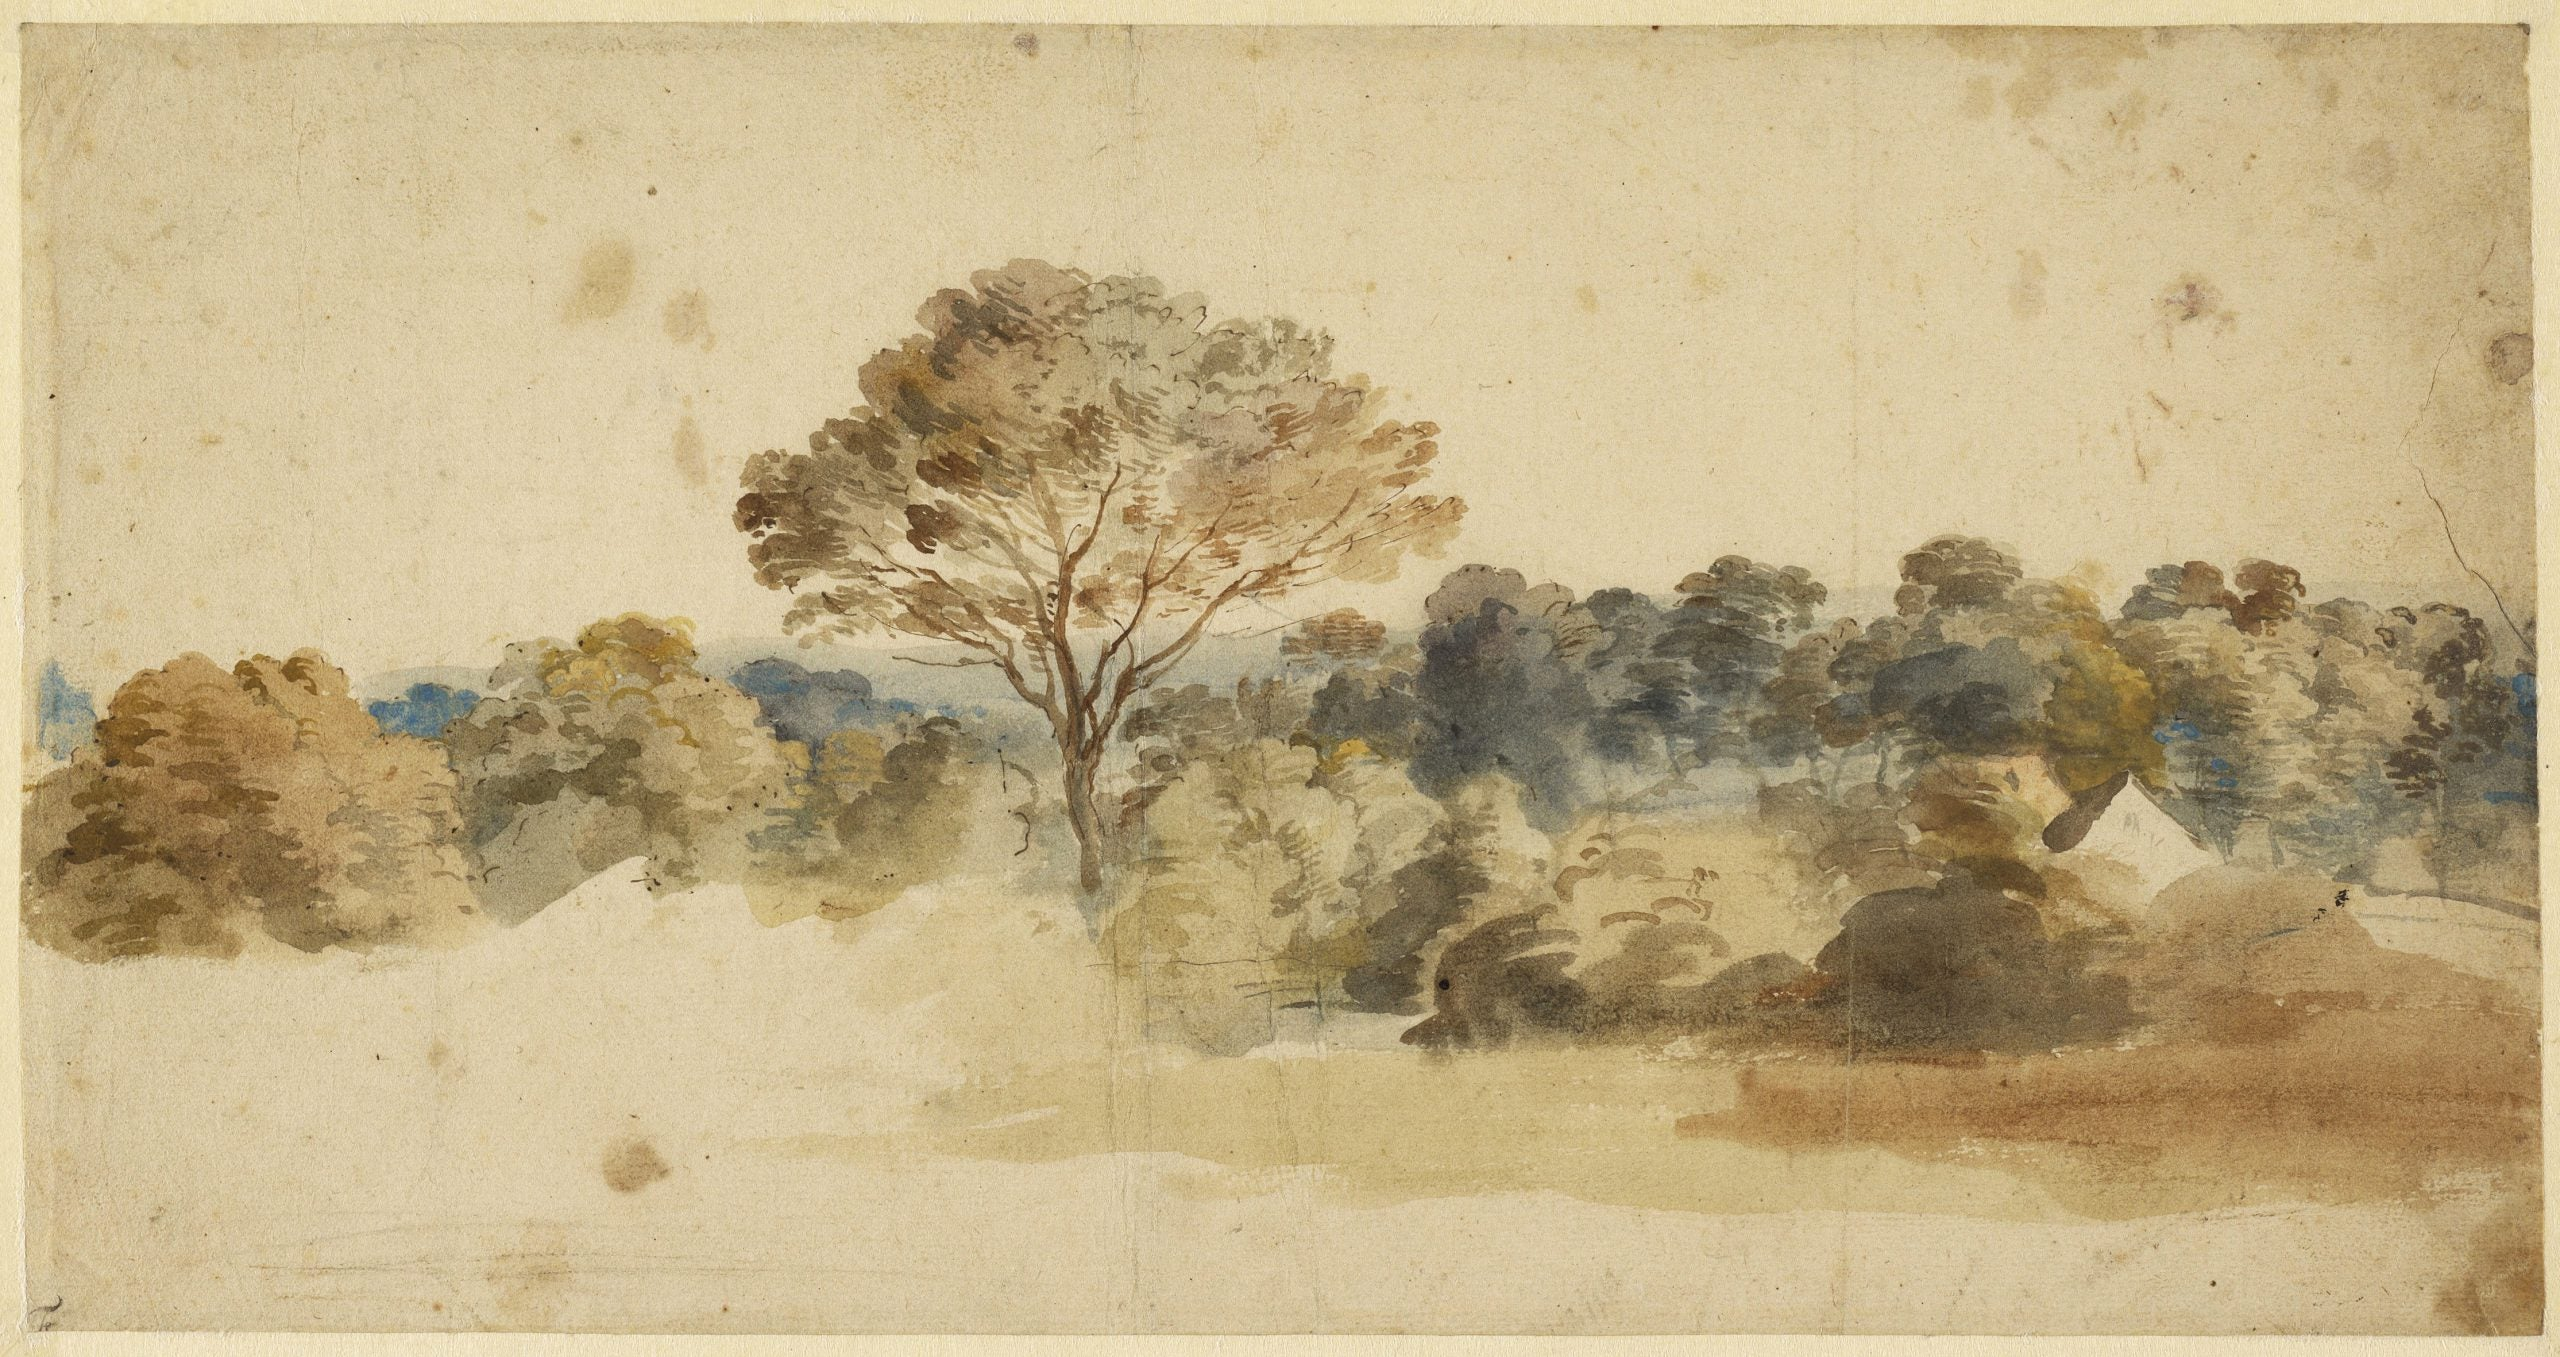 The greats outdoors: Van Dyck's bucolic backgrounds